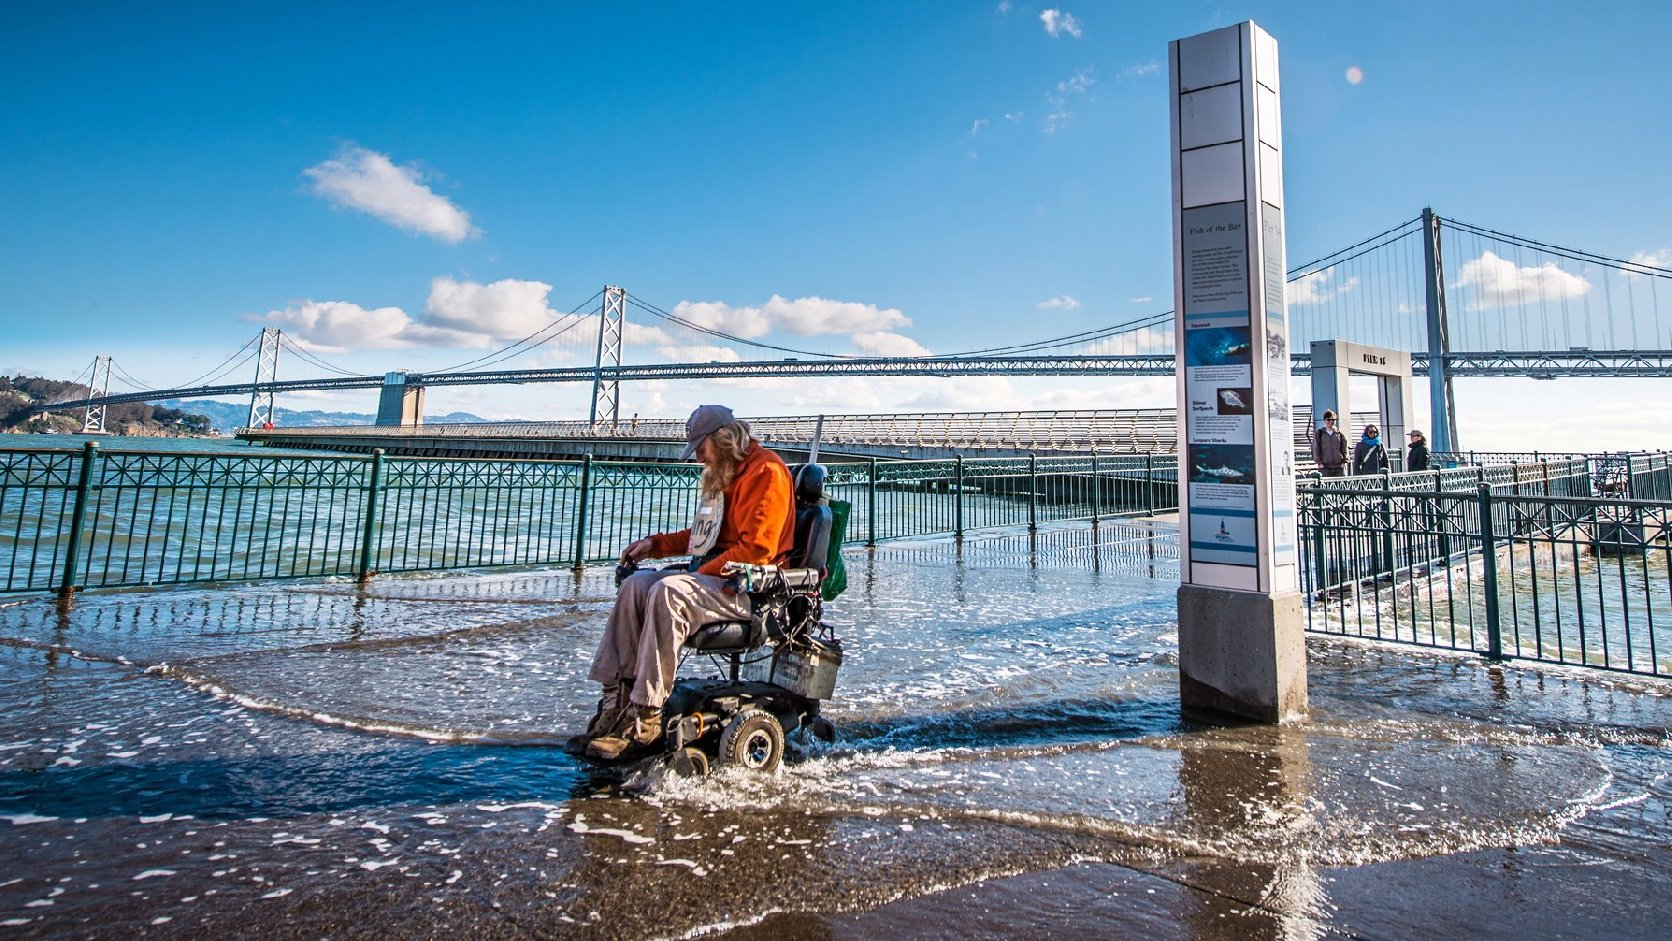 Flooding near the Bay Bridge during an extremely high tide. Photo by Michael Filippoff